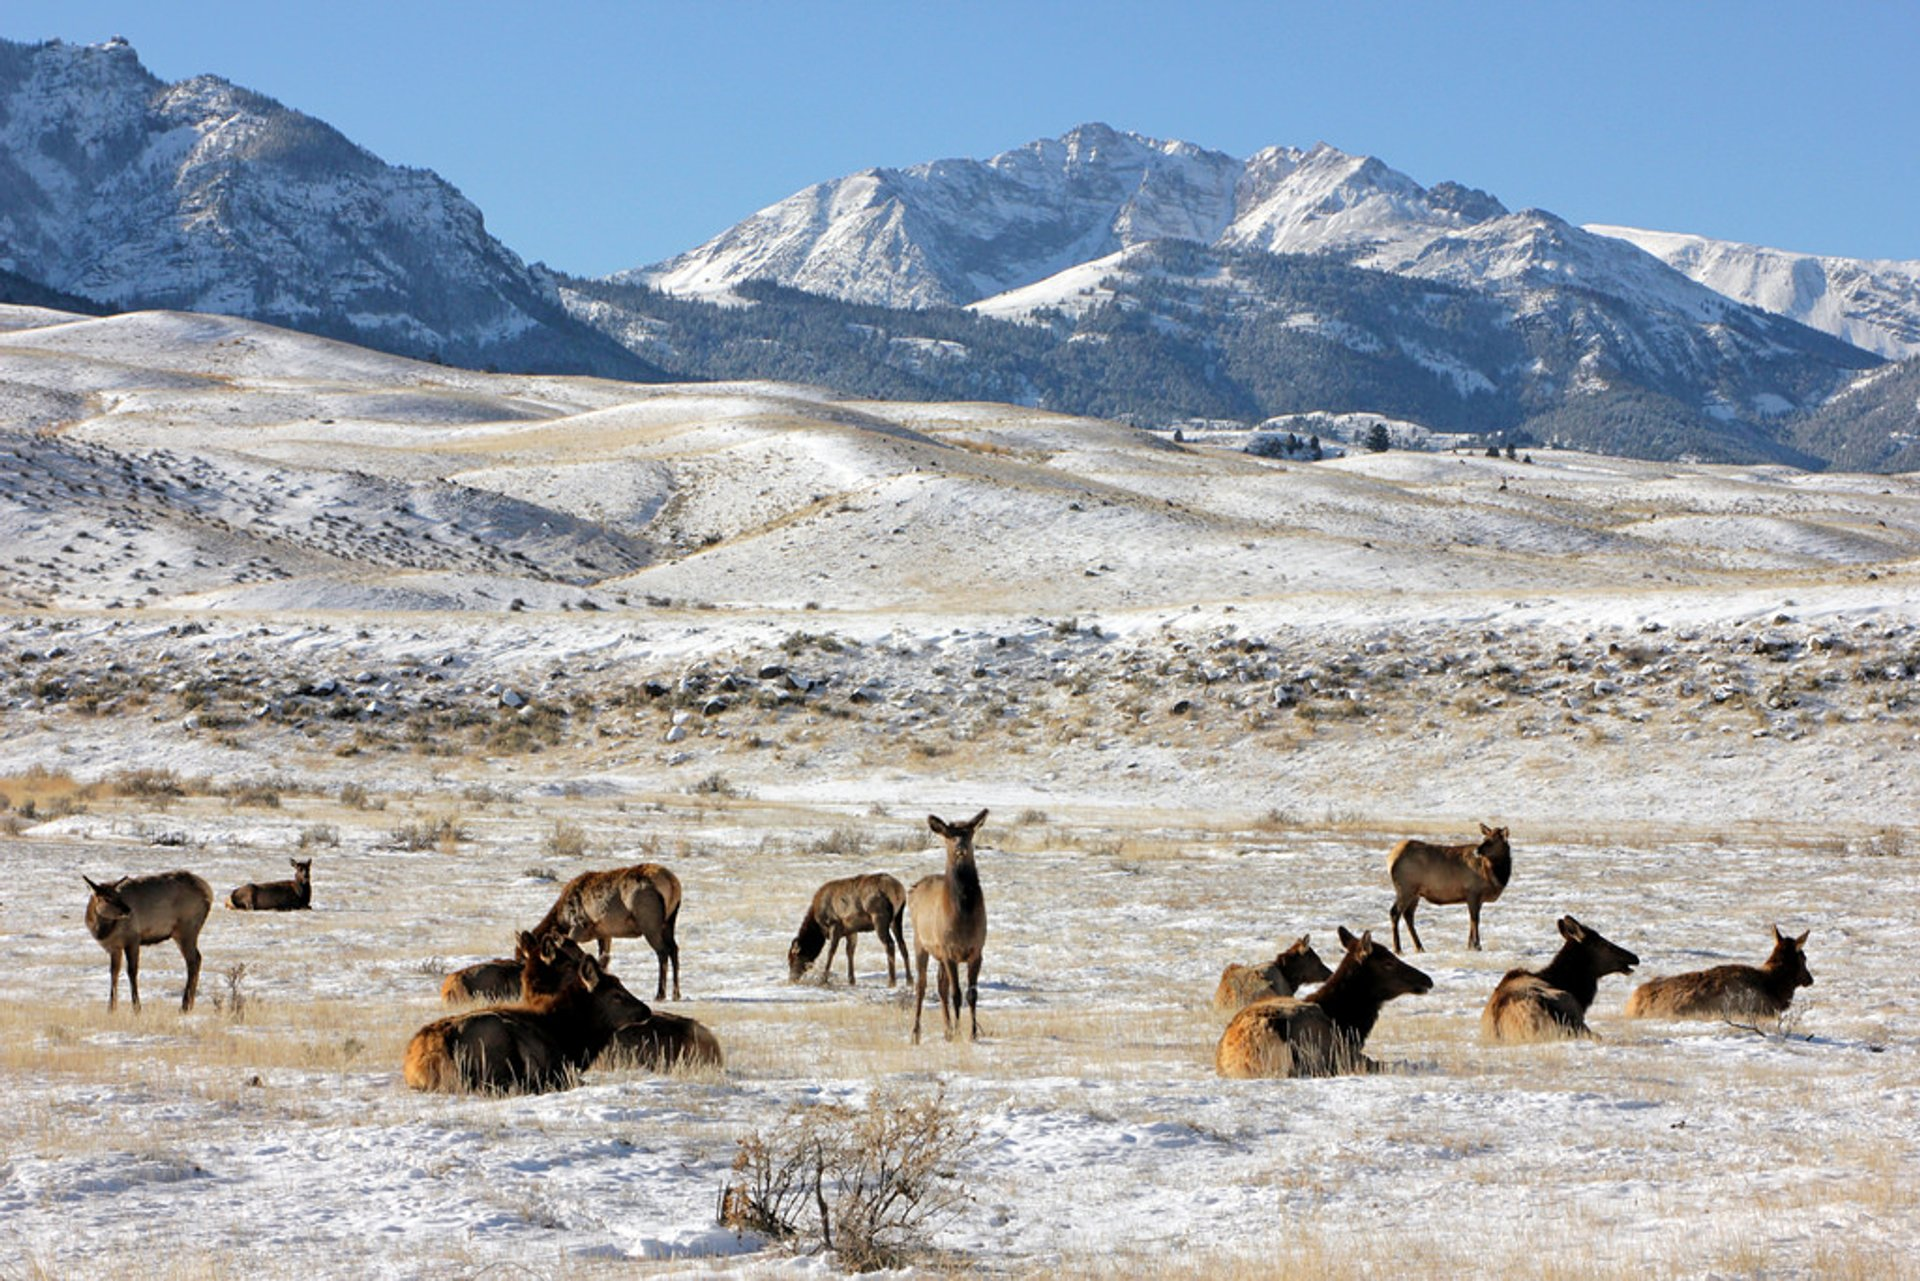 Cow elk near the North Entrance of Yellowstone National Park 2020